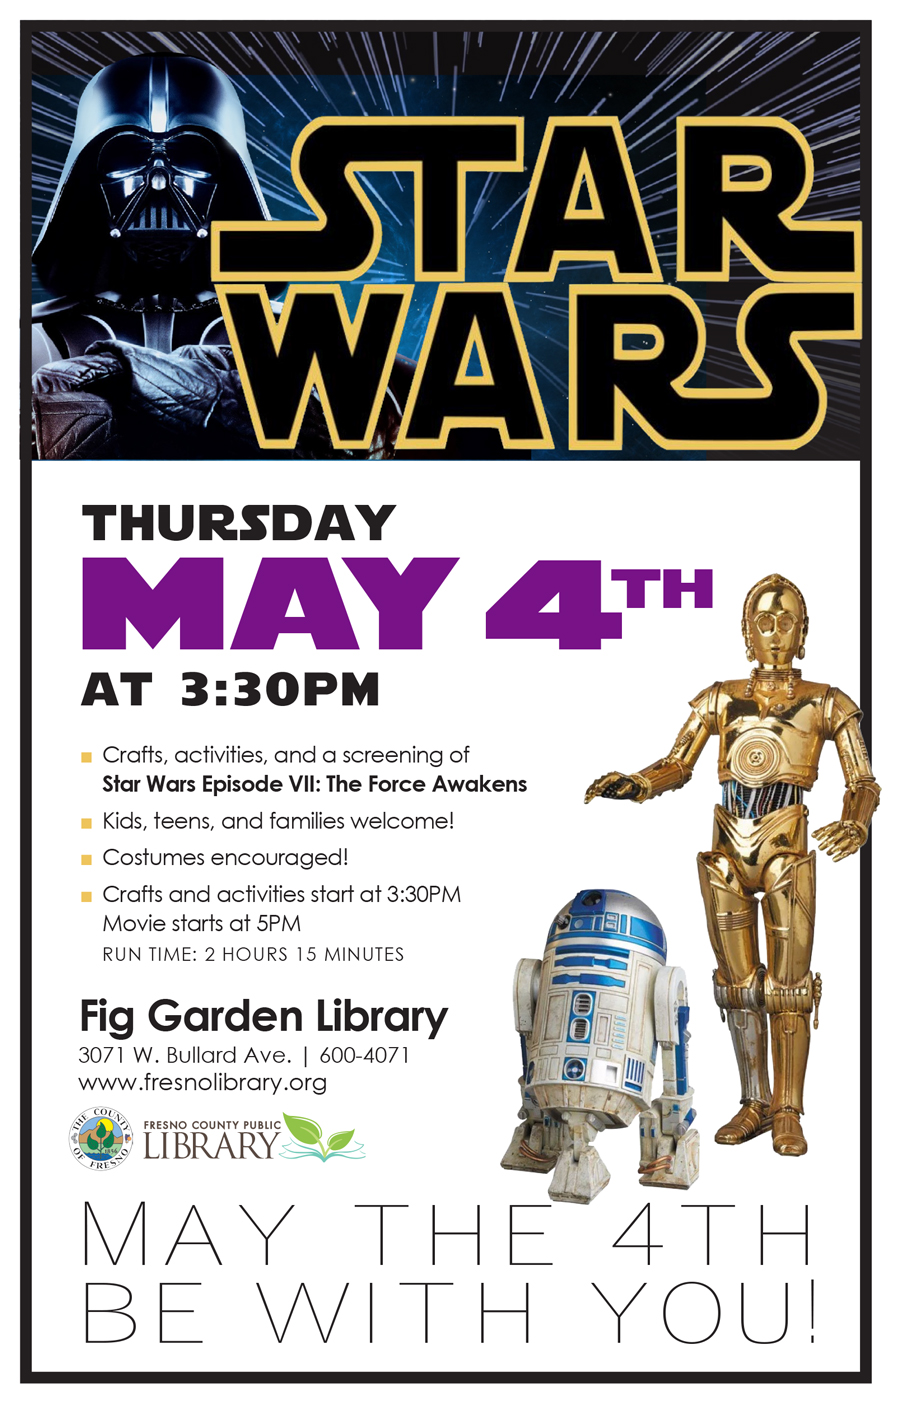 05 04 star wars may 4 fig 2017 friends of the fresno - Fresno home and garden show 2017 ...